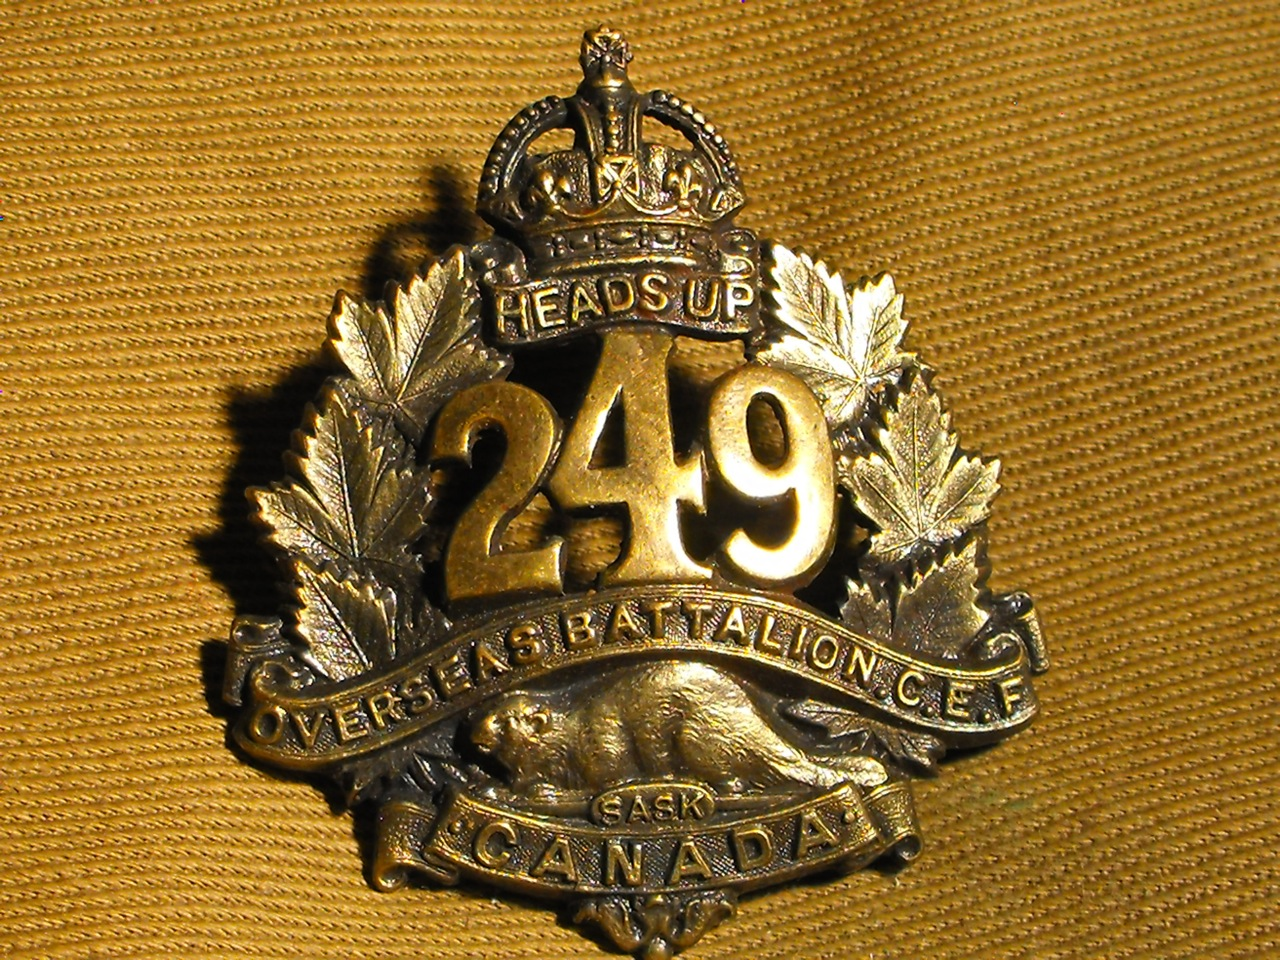 249th Battalion, Regina